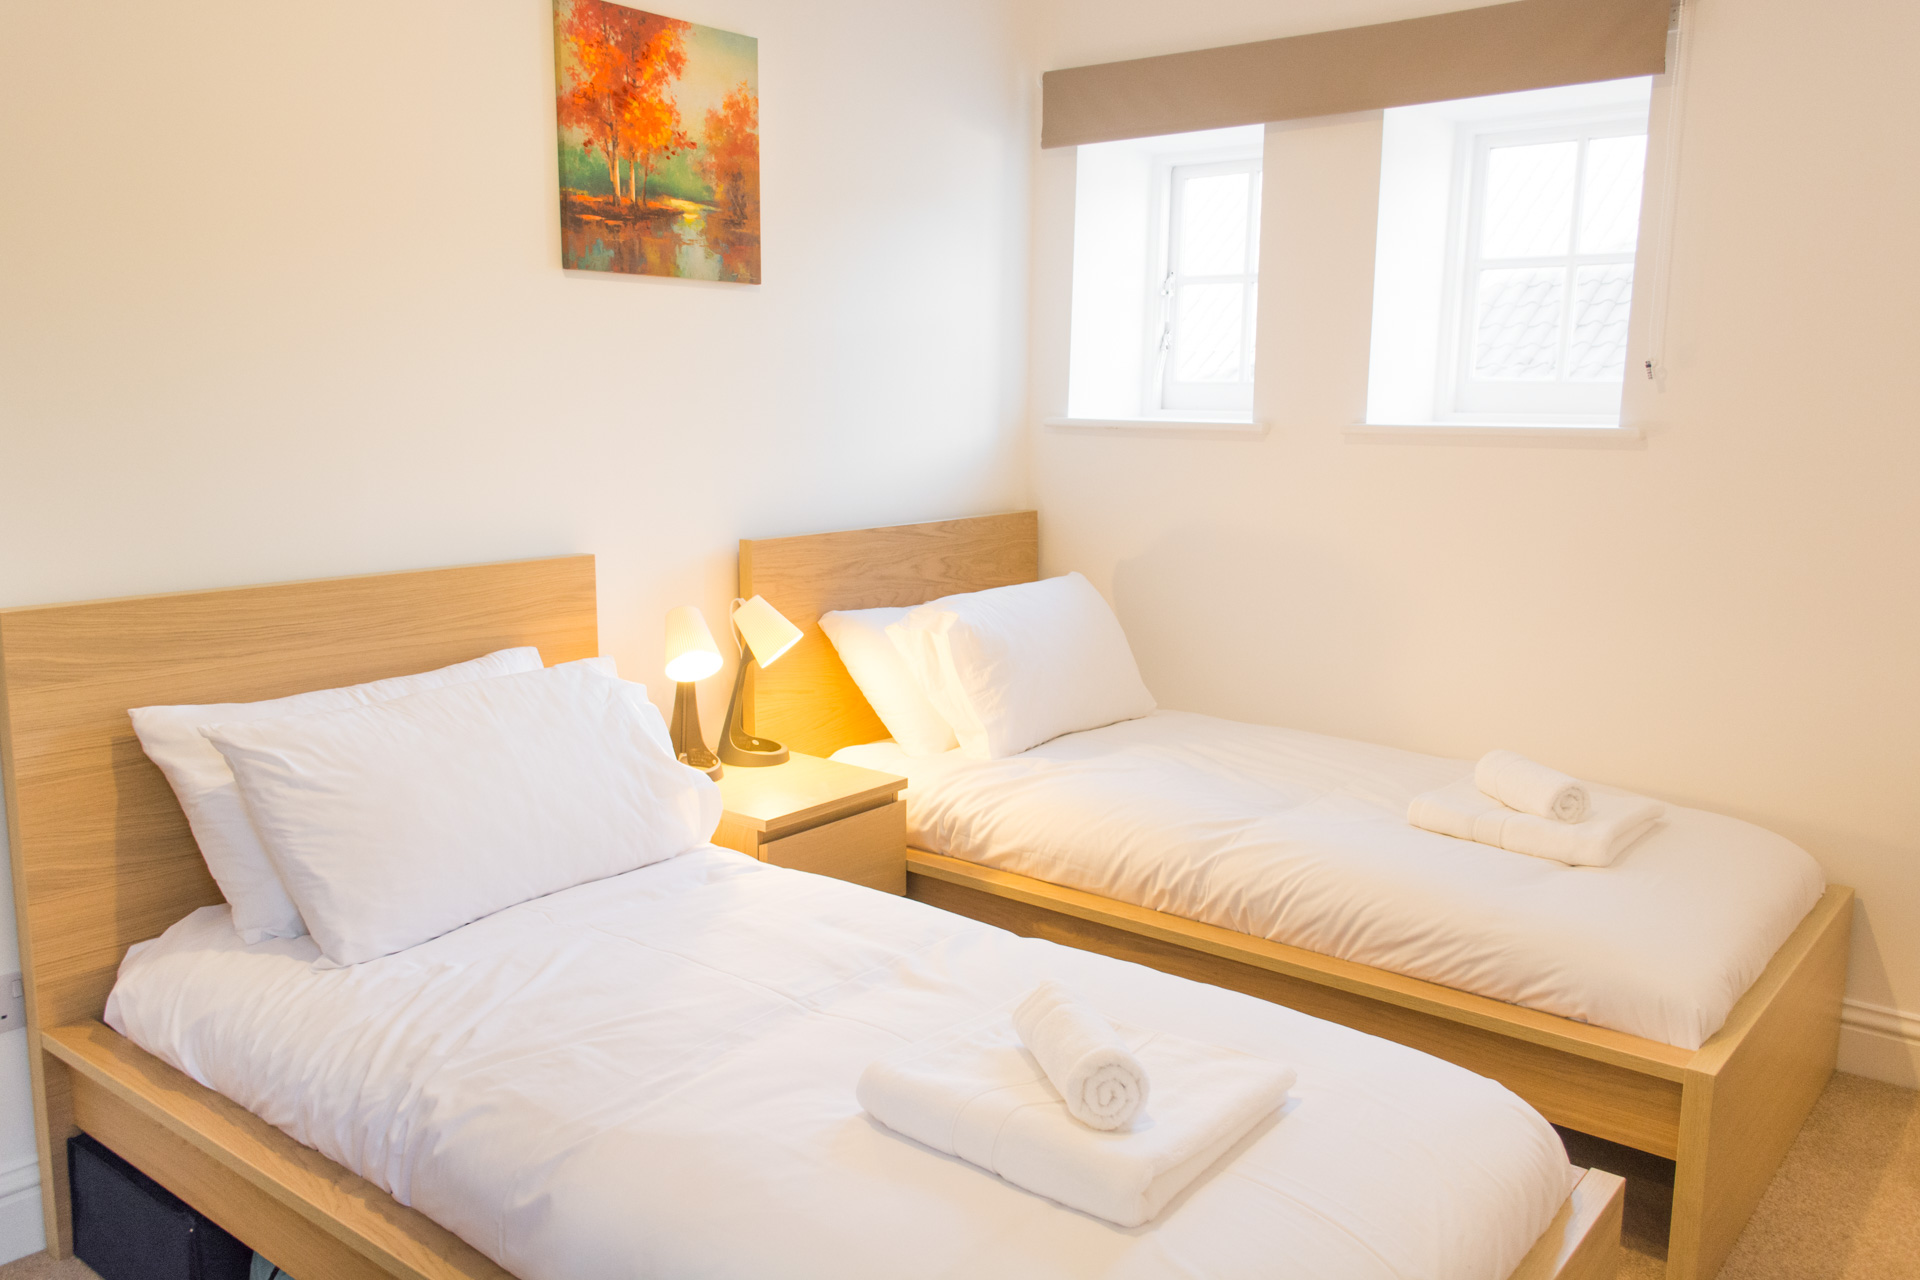 Twin bedroom, with white linen and bedside lamps.